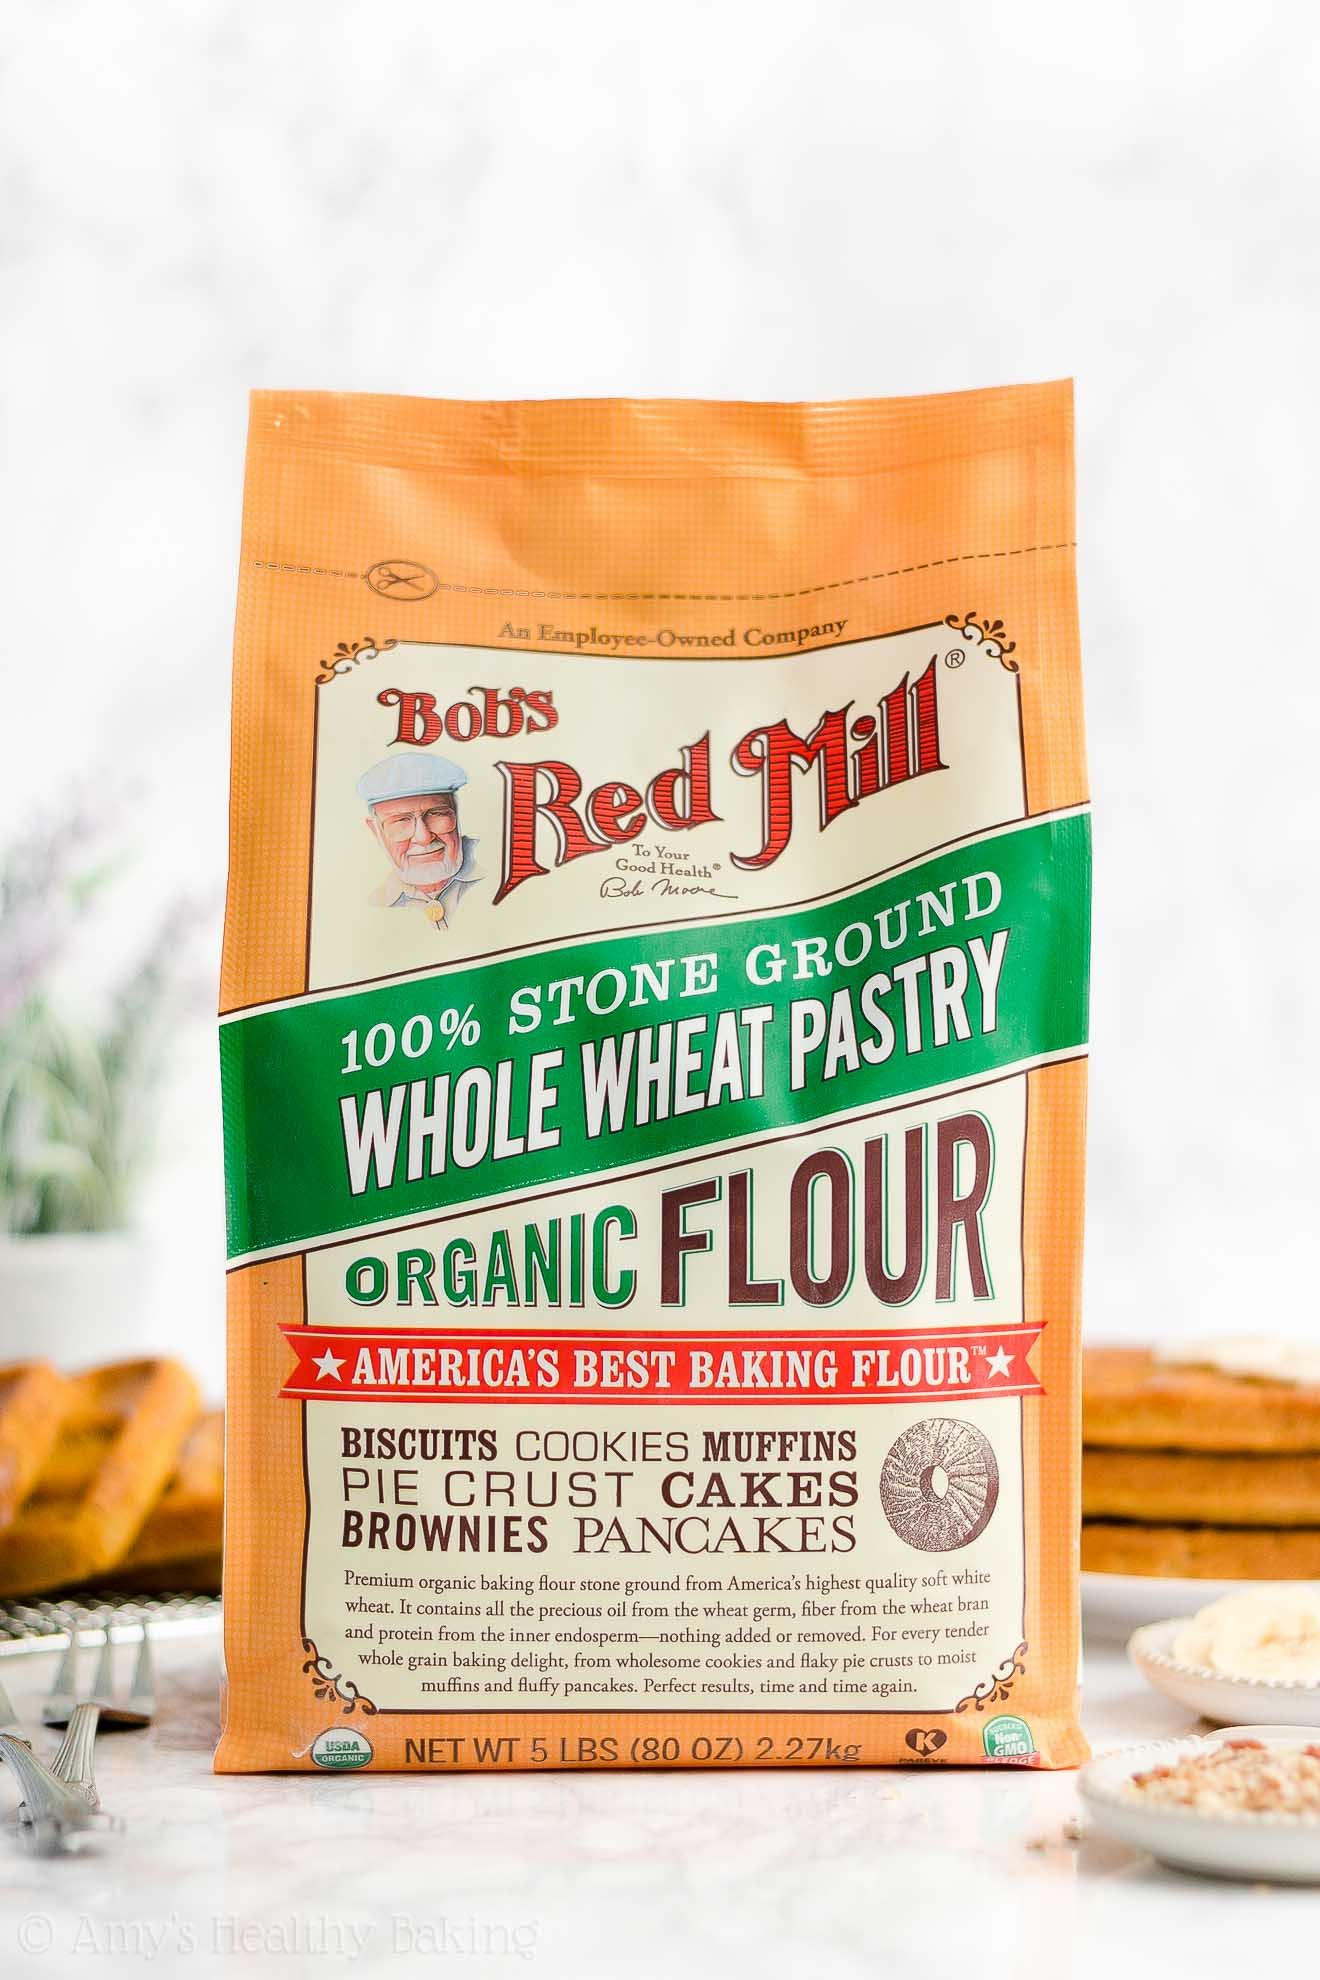 5 Pound Bag of Bob's Red Mill Organic Whole Wheat Pastry Flour